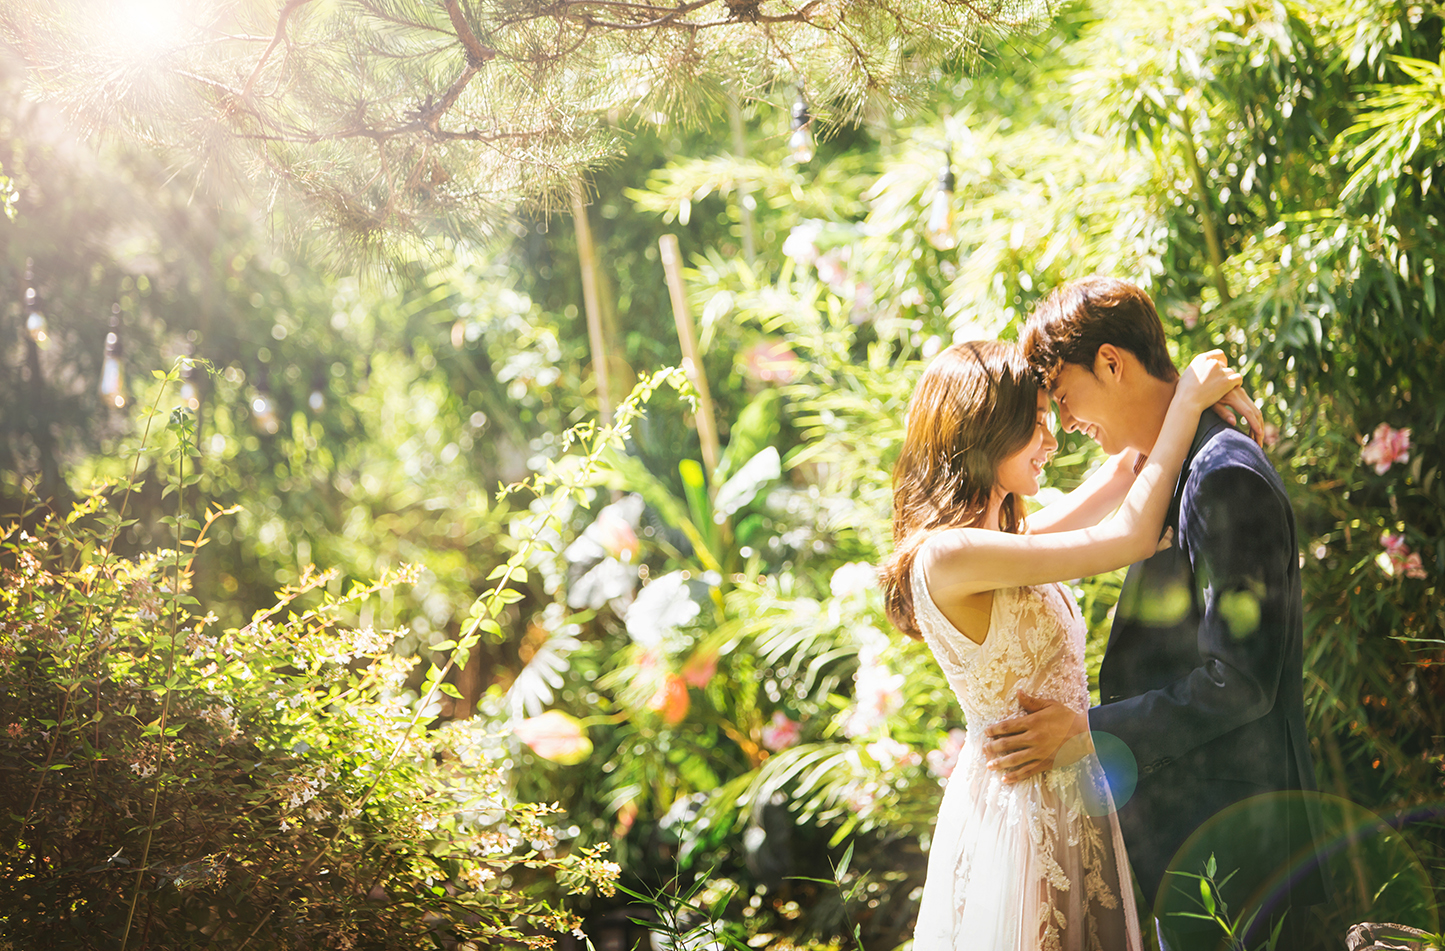 korean wedding photoshoot couple in a garden